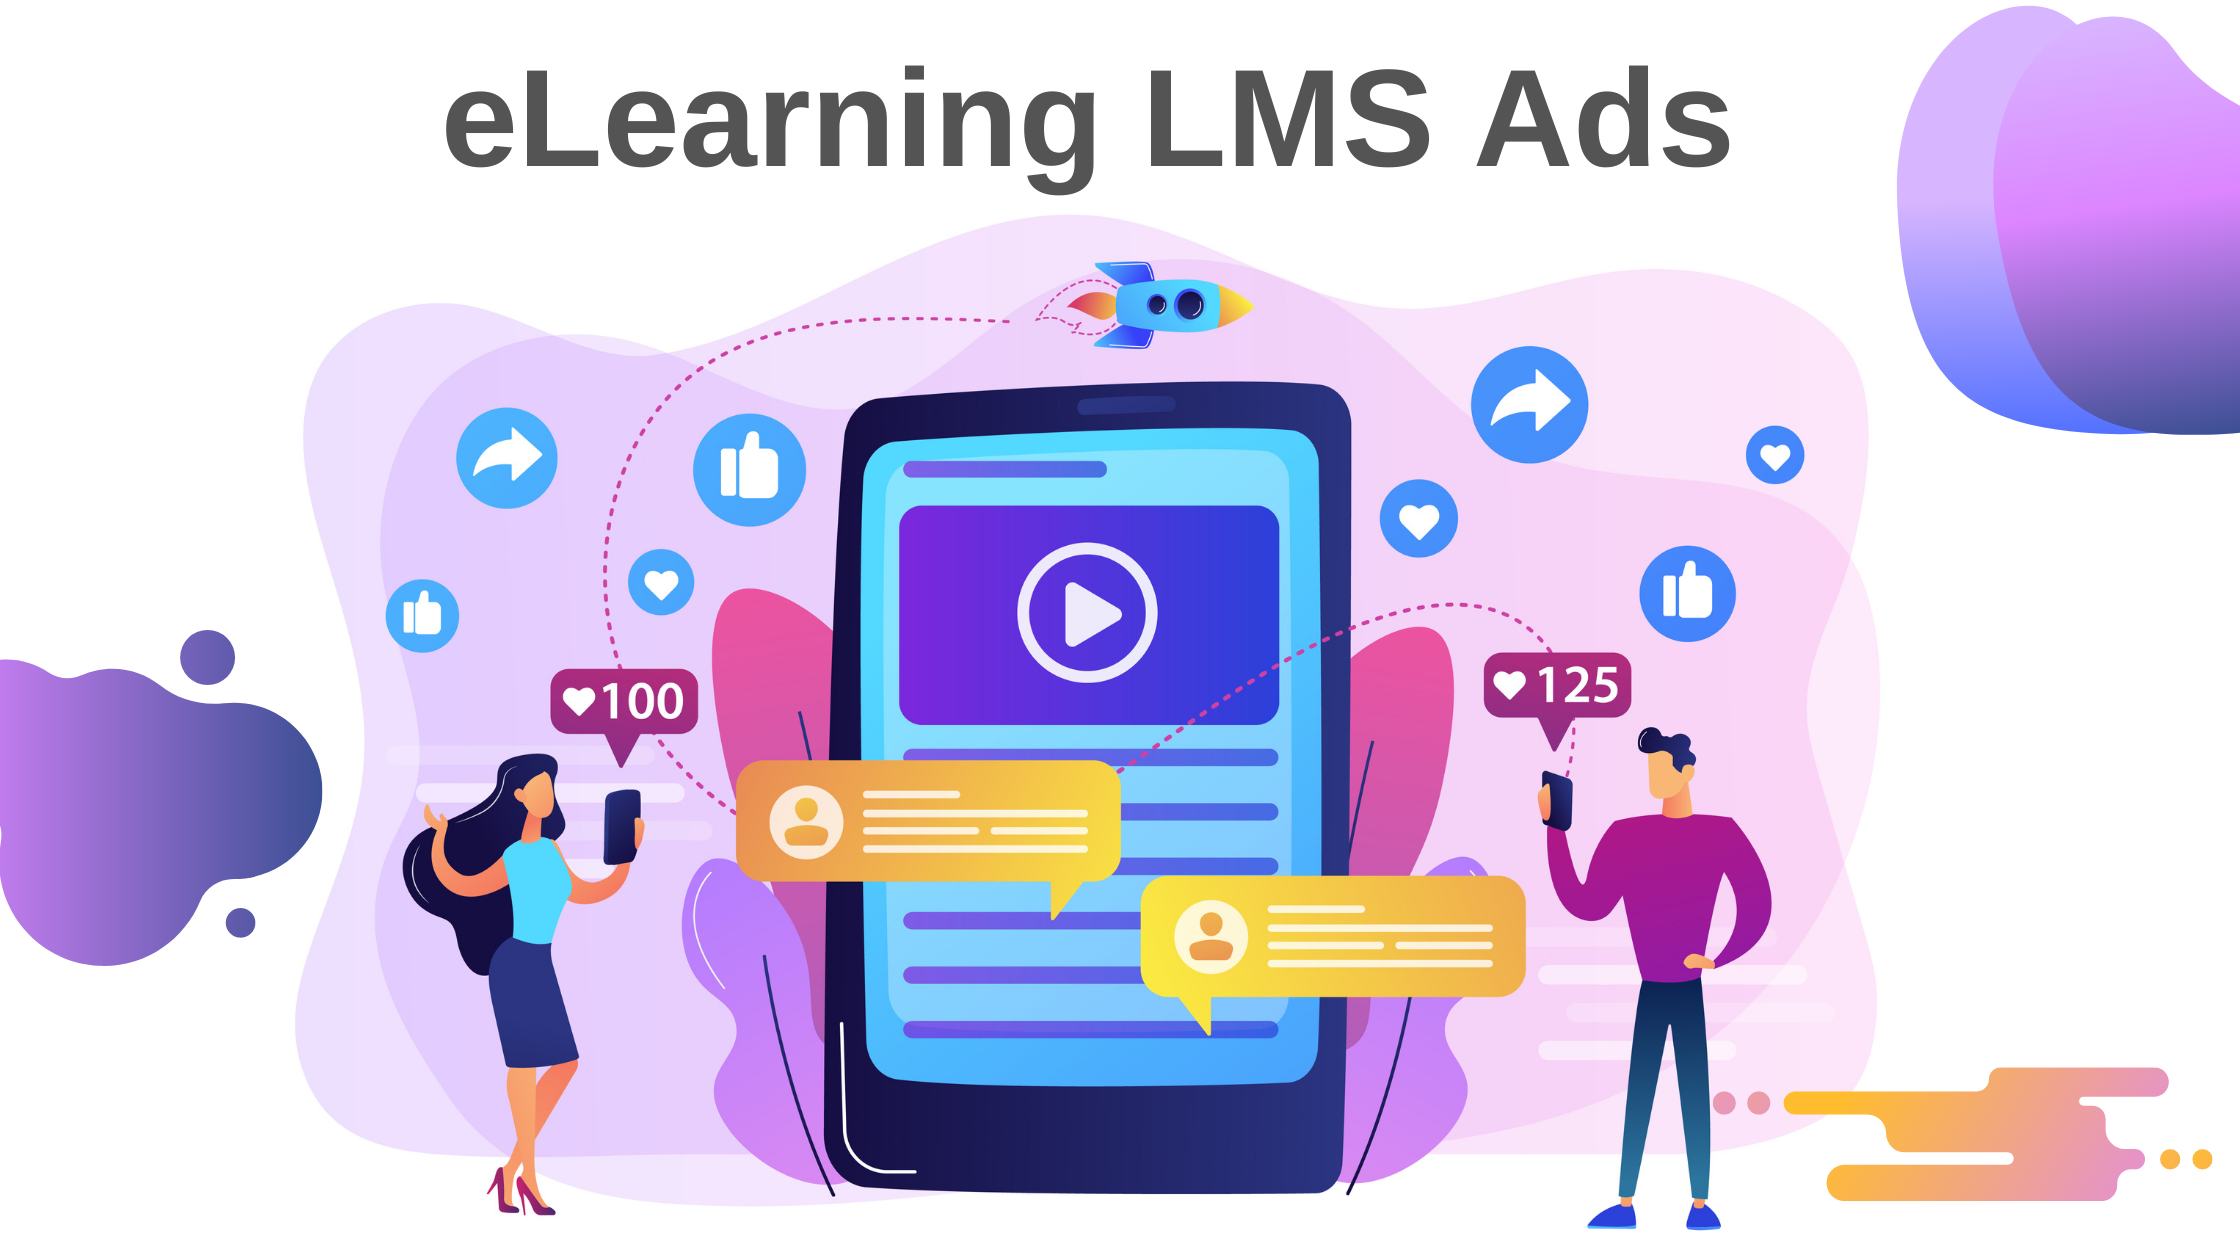 How to advertise your eLearning LMS course online